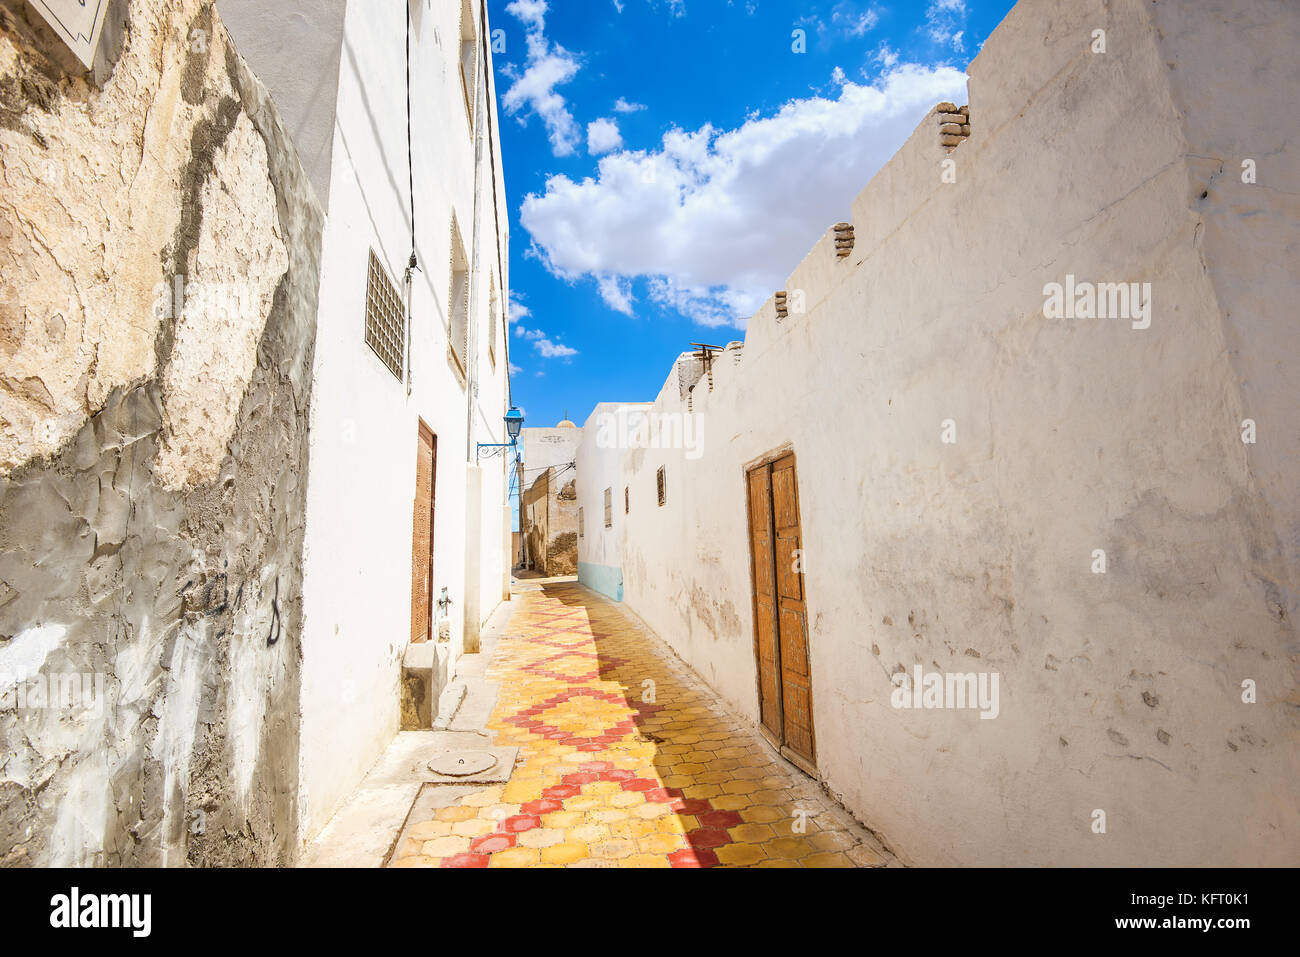 Cityscape with narrow street in Medina of Kairouan. Tunisia, North Africa - Stock Image